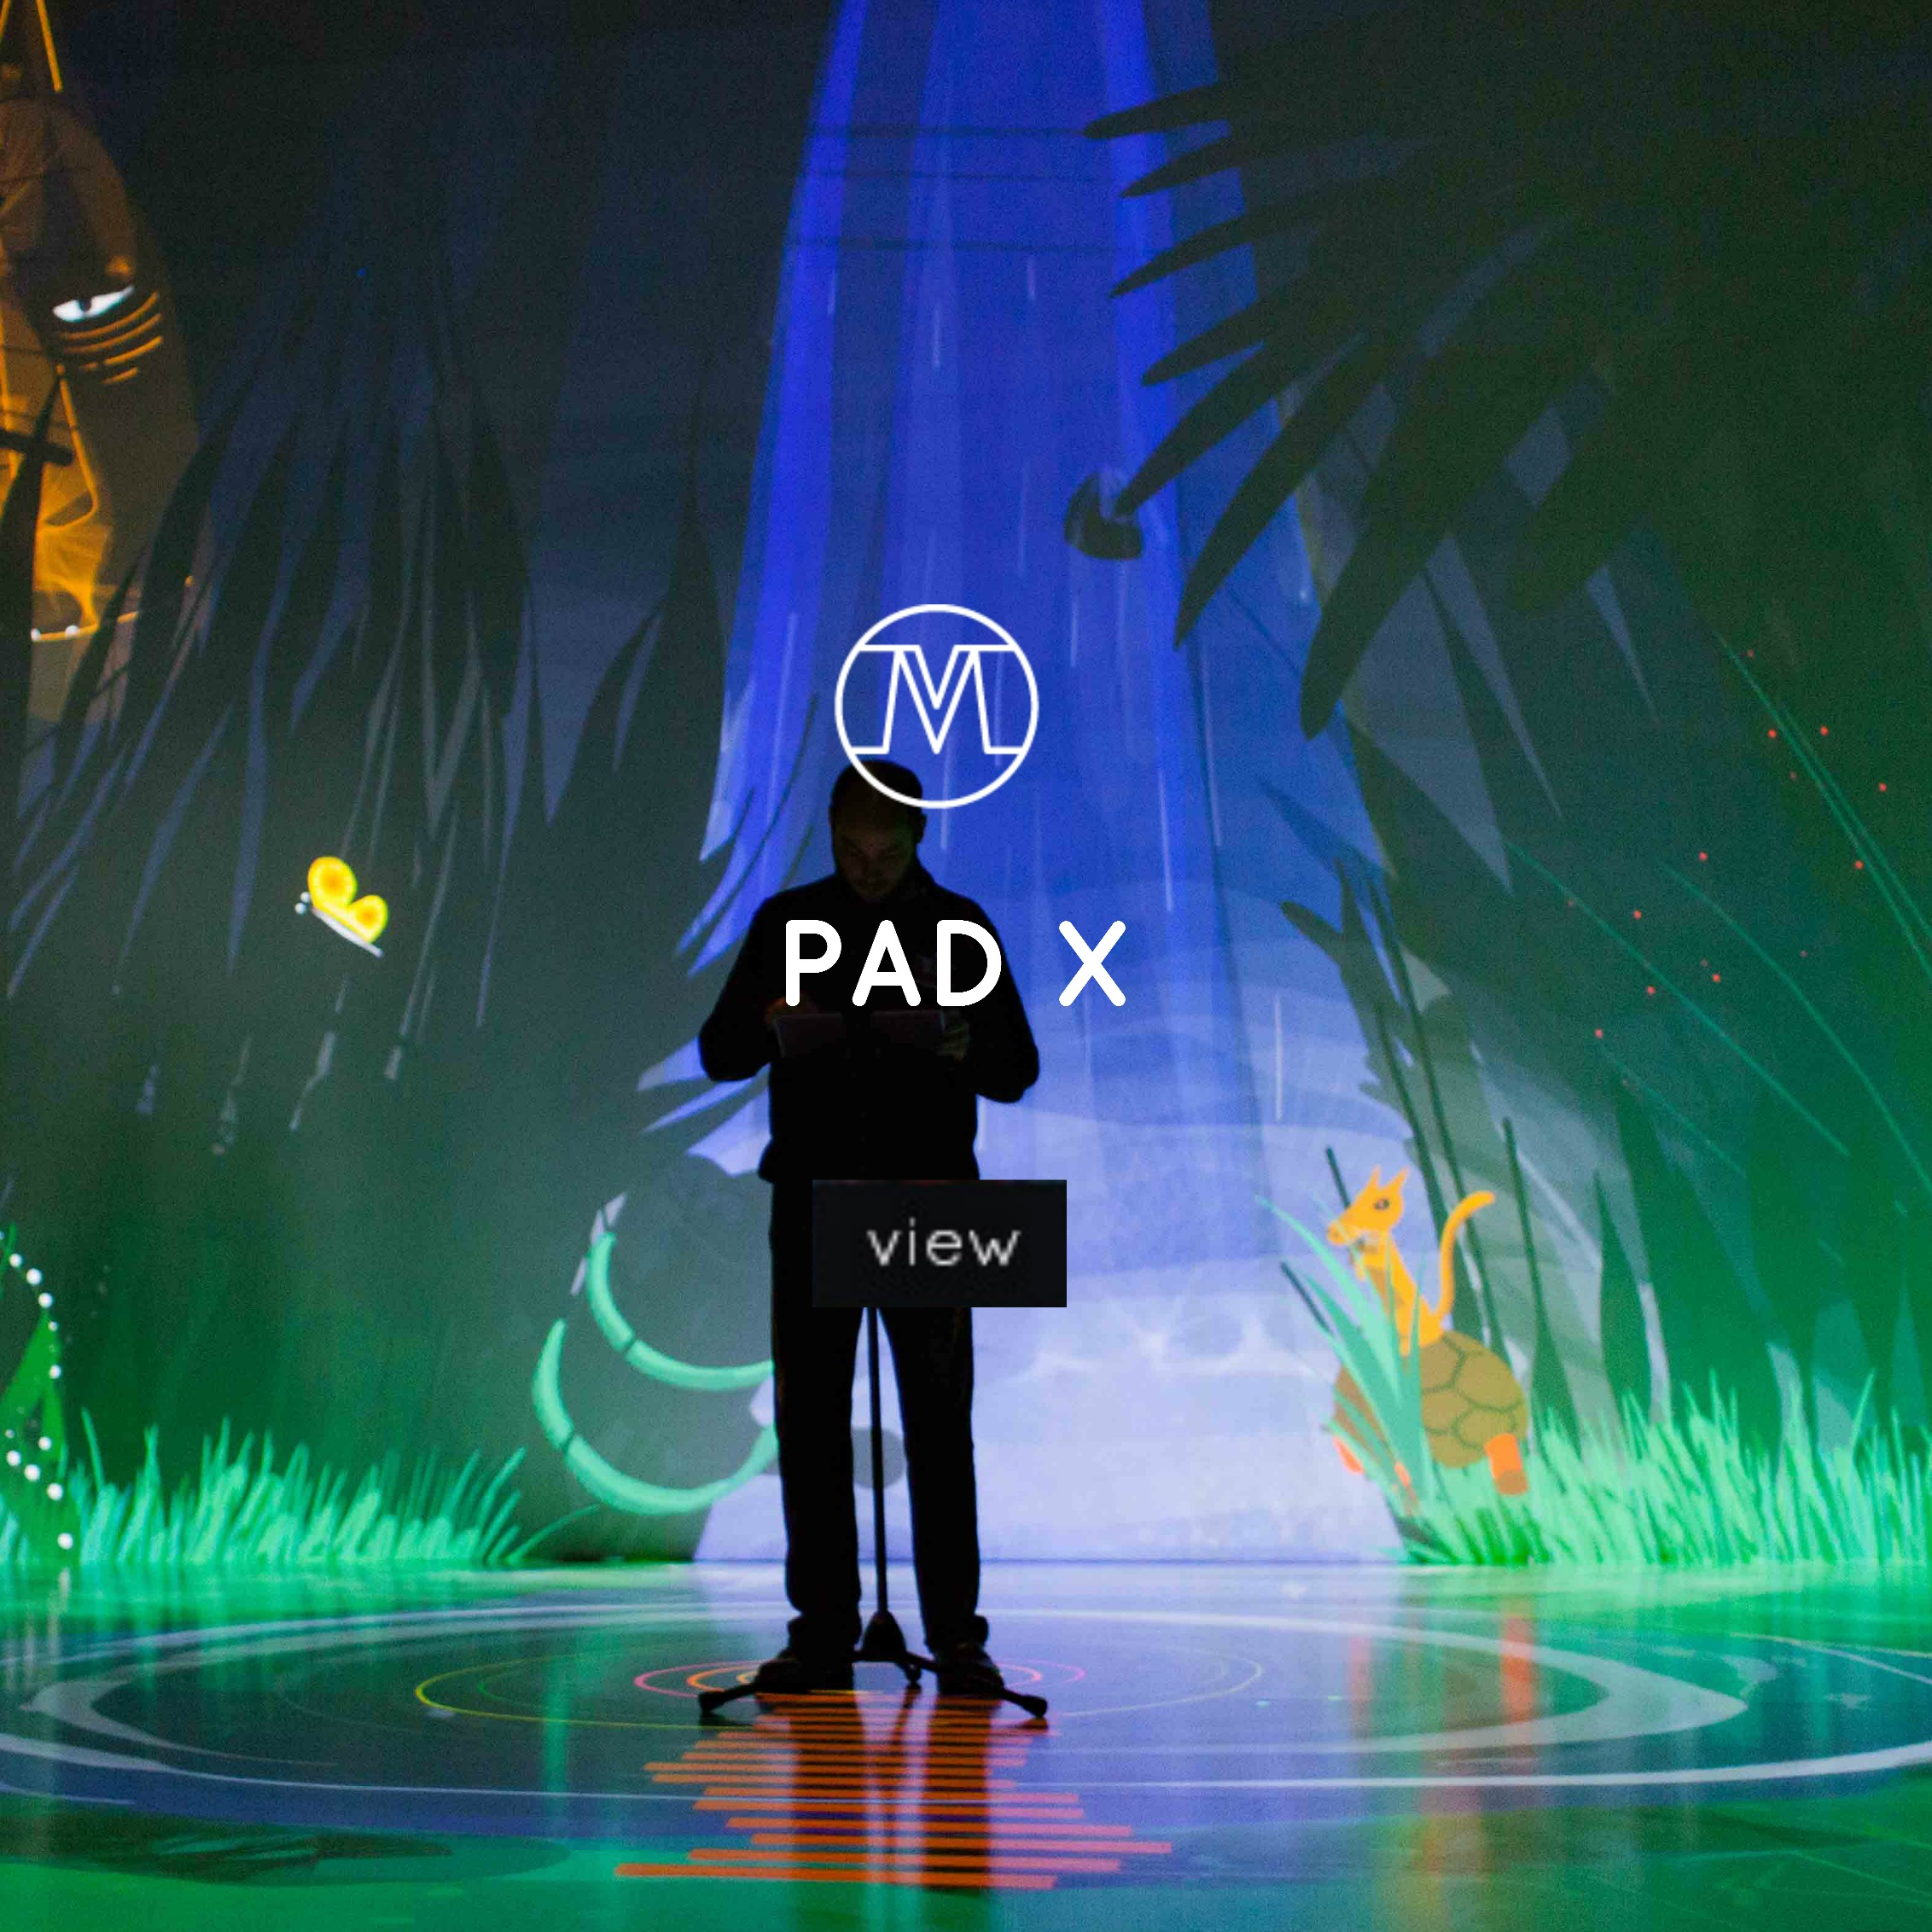 VoxMagna Agency, Mariana Rinaldi, Pad X, Ipad art, technological artists, roaming characters, roving act, graphics, immersive environments, events, new media art, installation, interactive installation, digital art